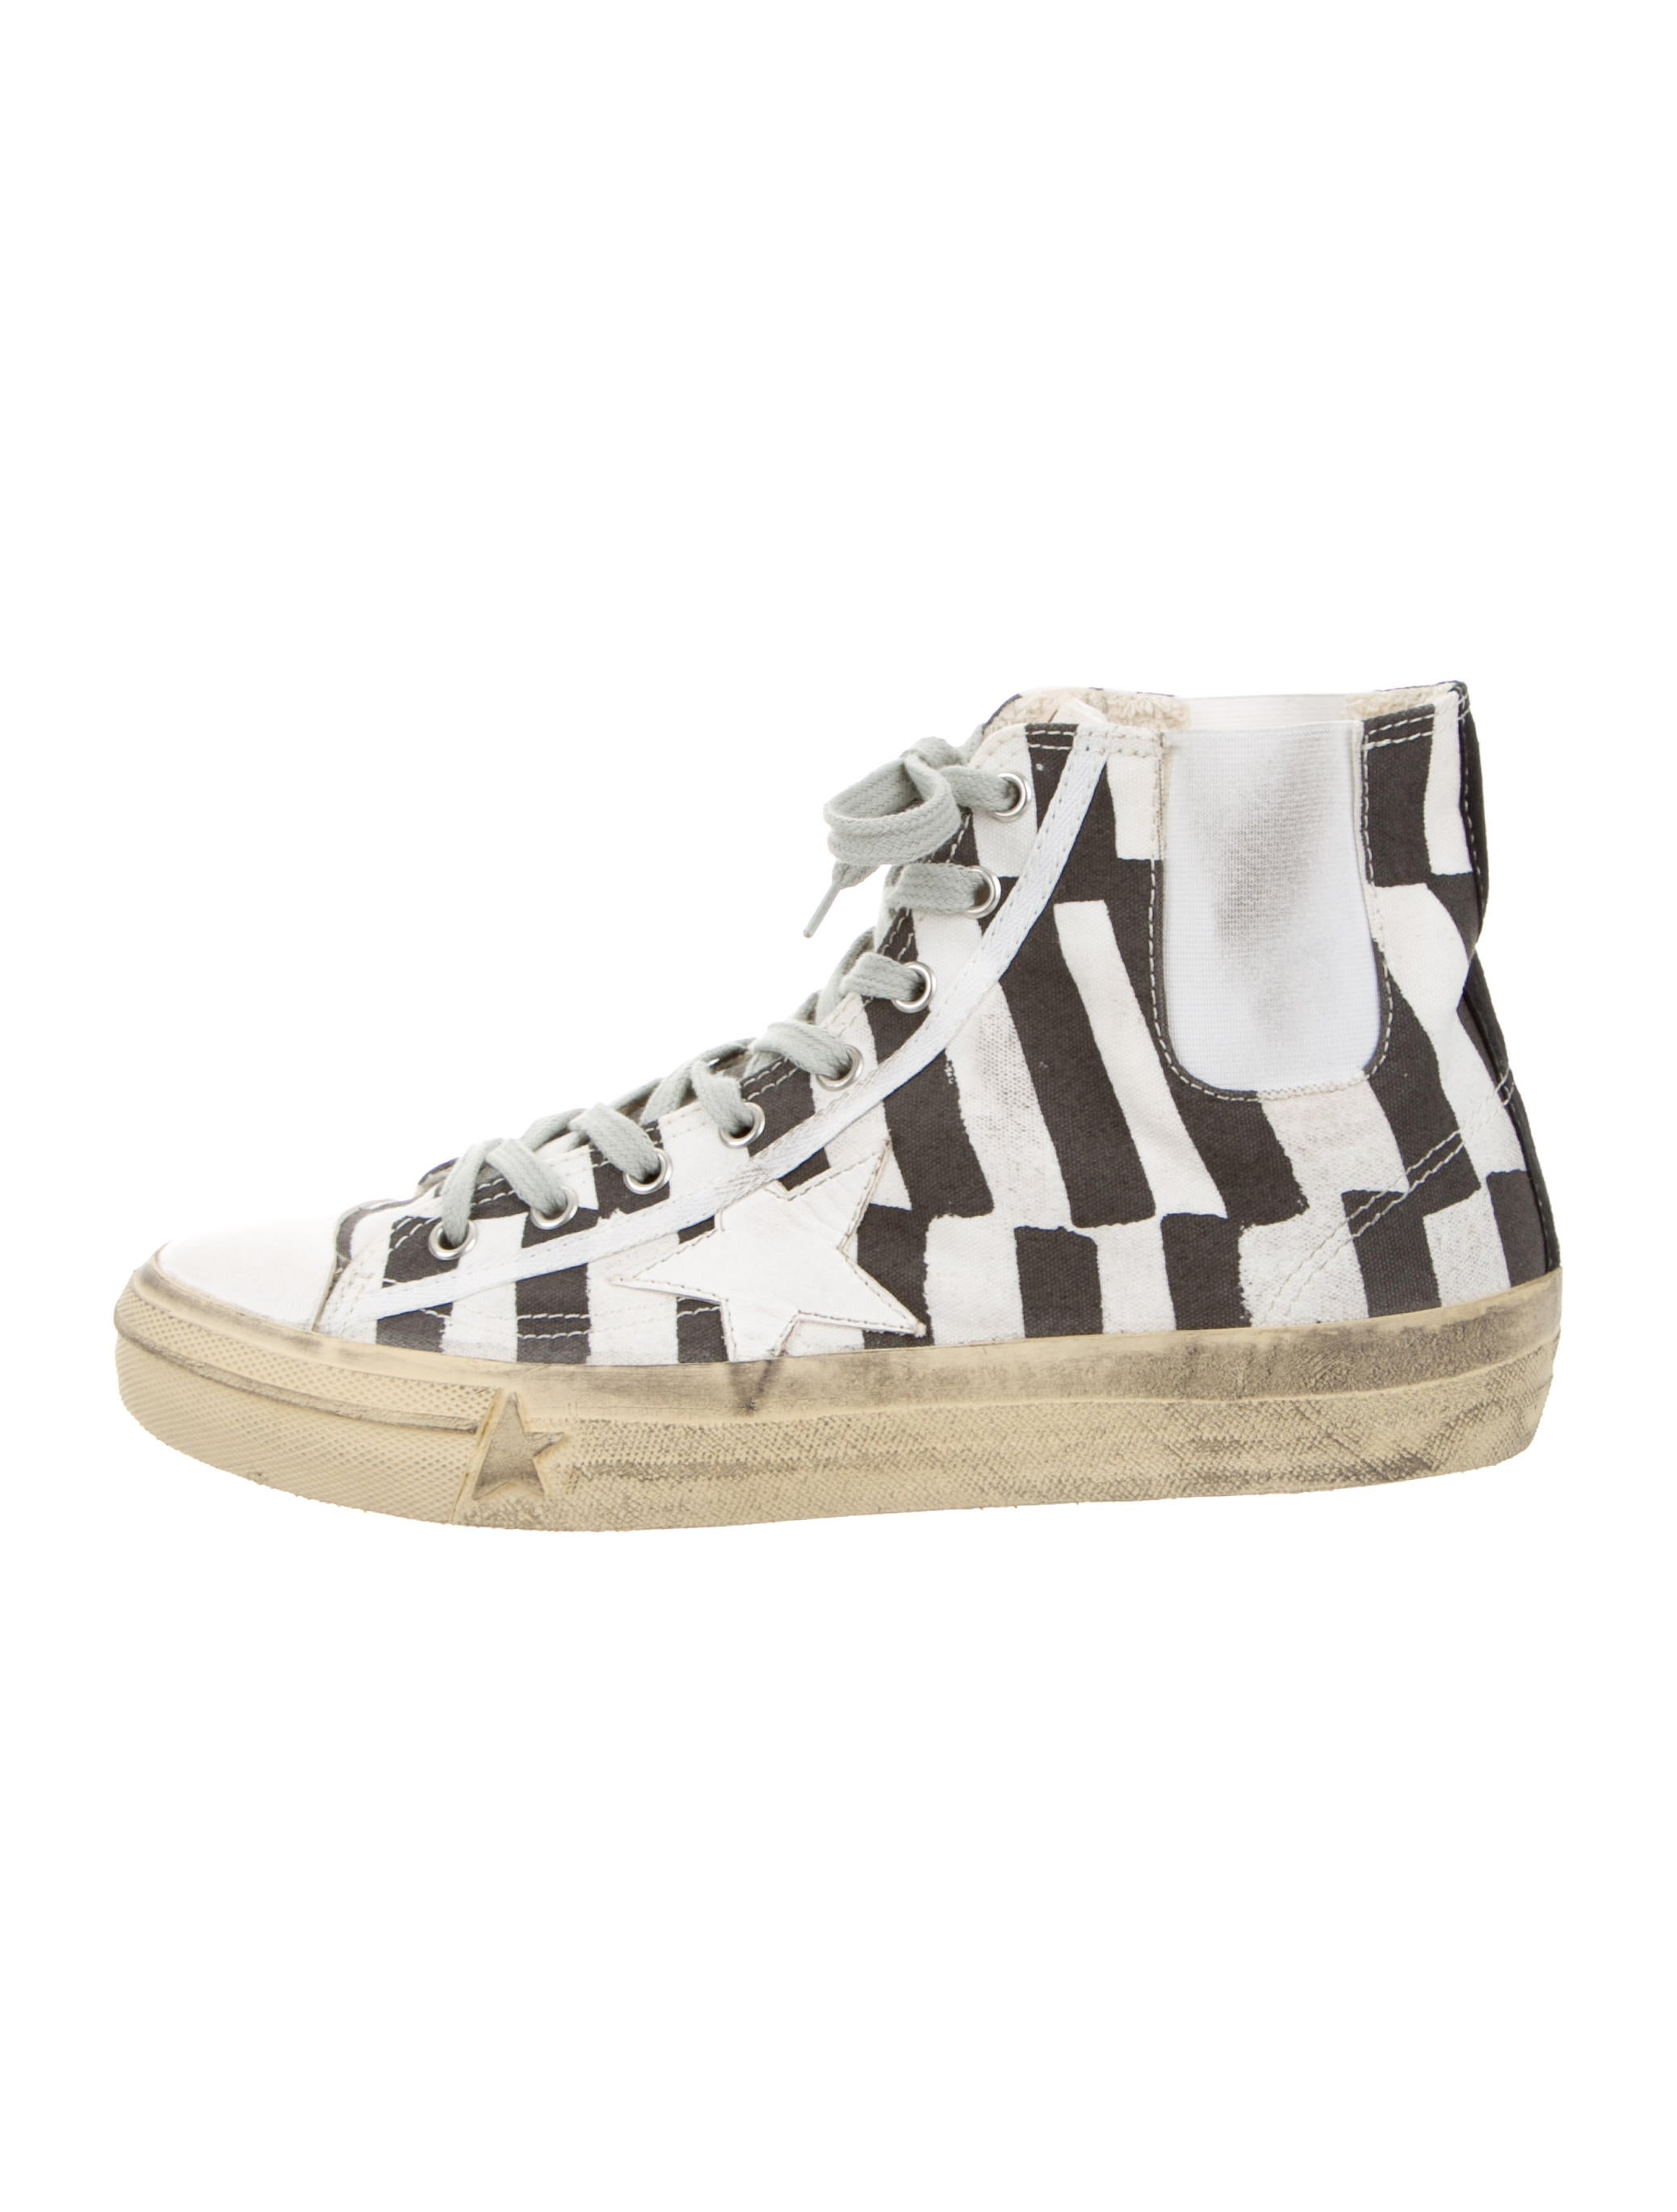 golden goose canvas high top sneakers shoes wg522435